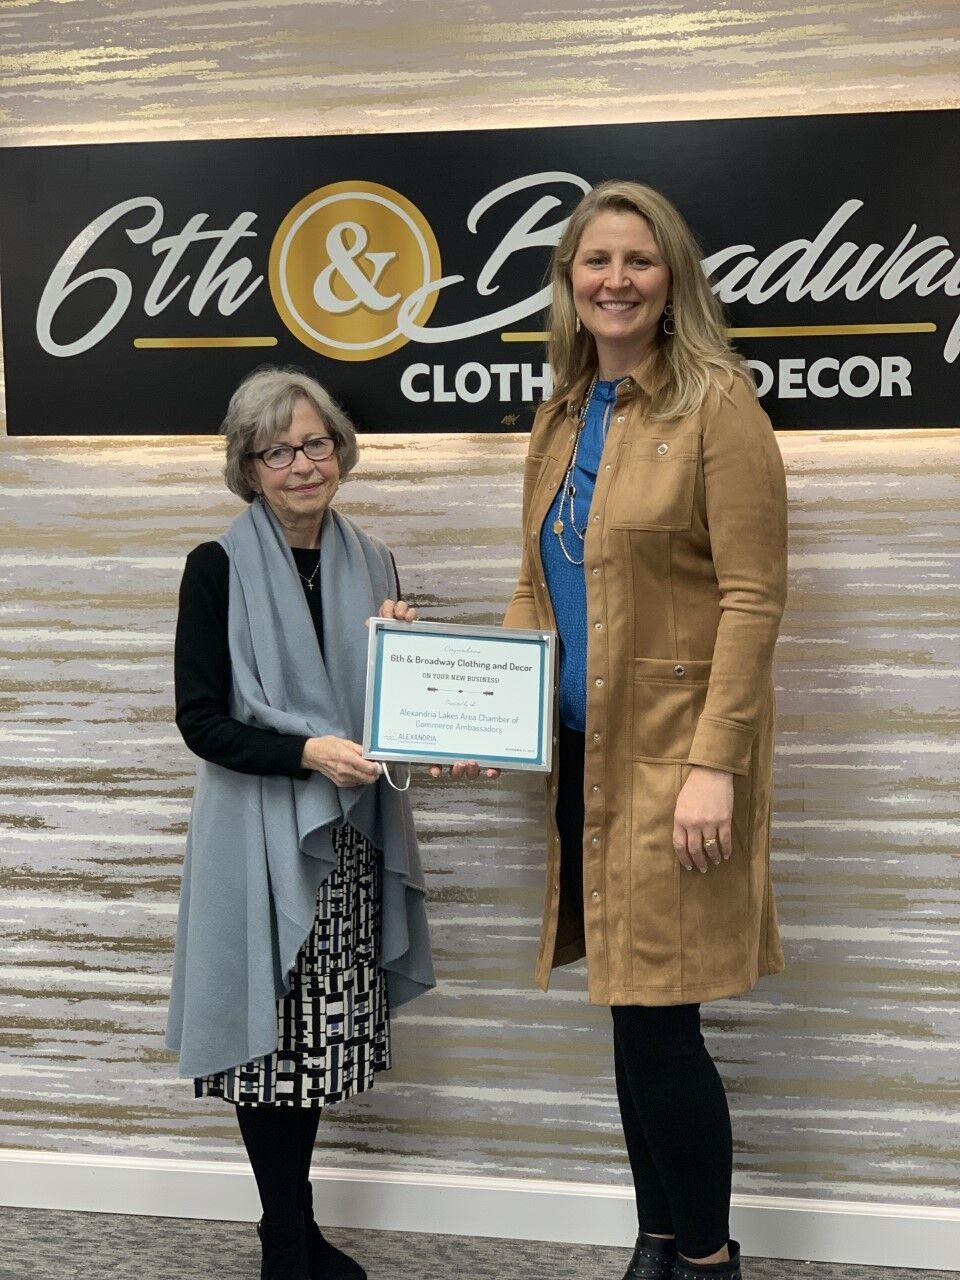 Chamber Ambassadors Recognize 6th & Broadway Clothing and Decor